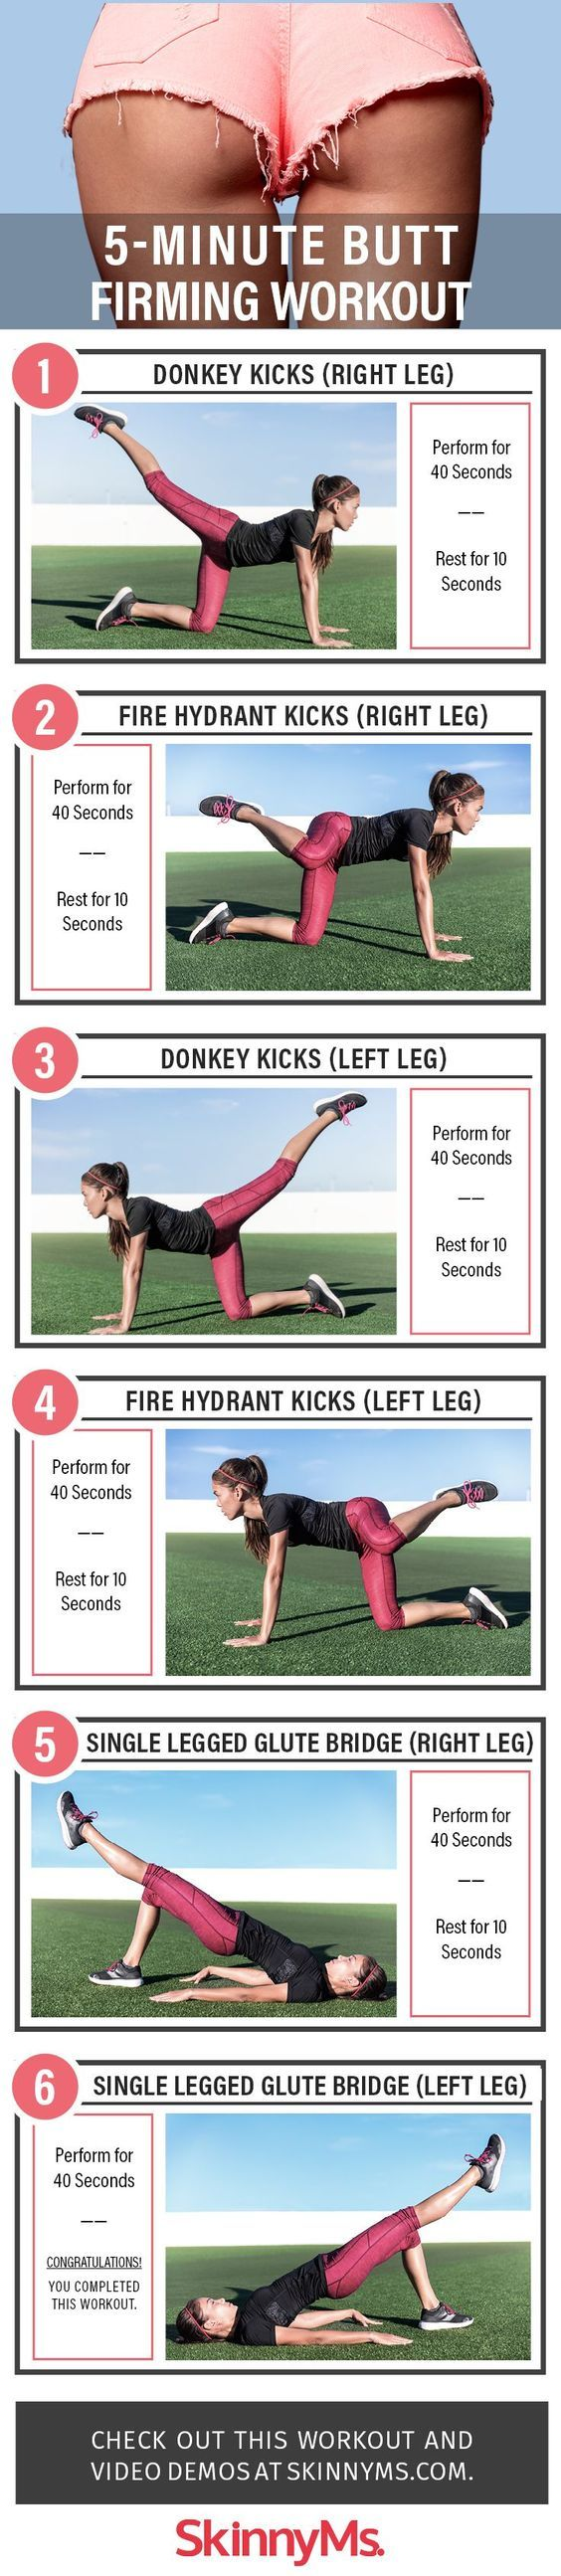 Looking for a great booty workout? Try these workouts for a firm booty! These quick workouts take 5 minutes of your time and you can do them daily, whenever you have the time. This amazing list includes 5-minute ab workouts for flat belly, 5-minute butt workouts, 5-minute leg workouts and inner thigh workouts and 5-minute arm workouts. Most of these exercises require almost no equipment. Some of them - just a pair of dumbbells and you can do them at home or anywhere you want. Have fun!